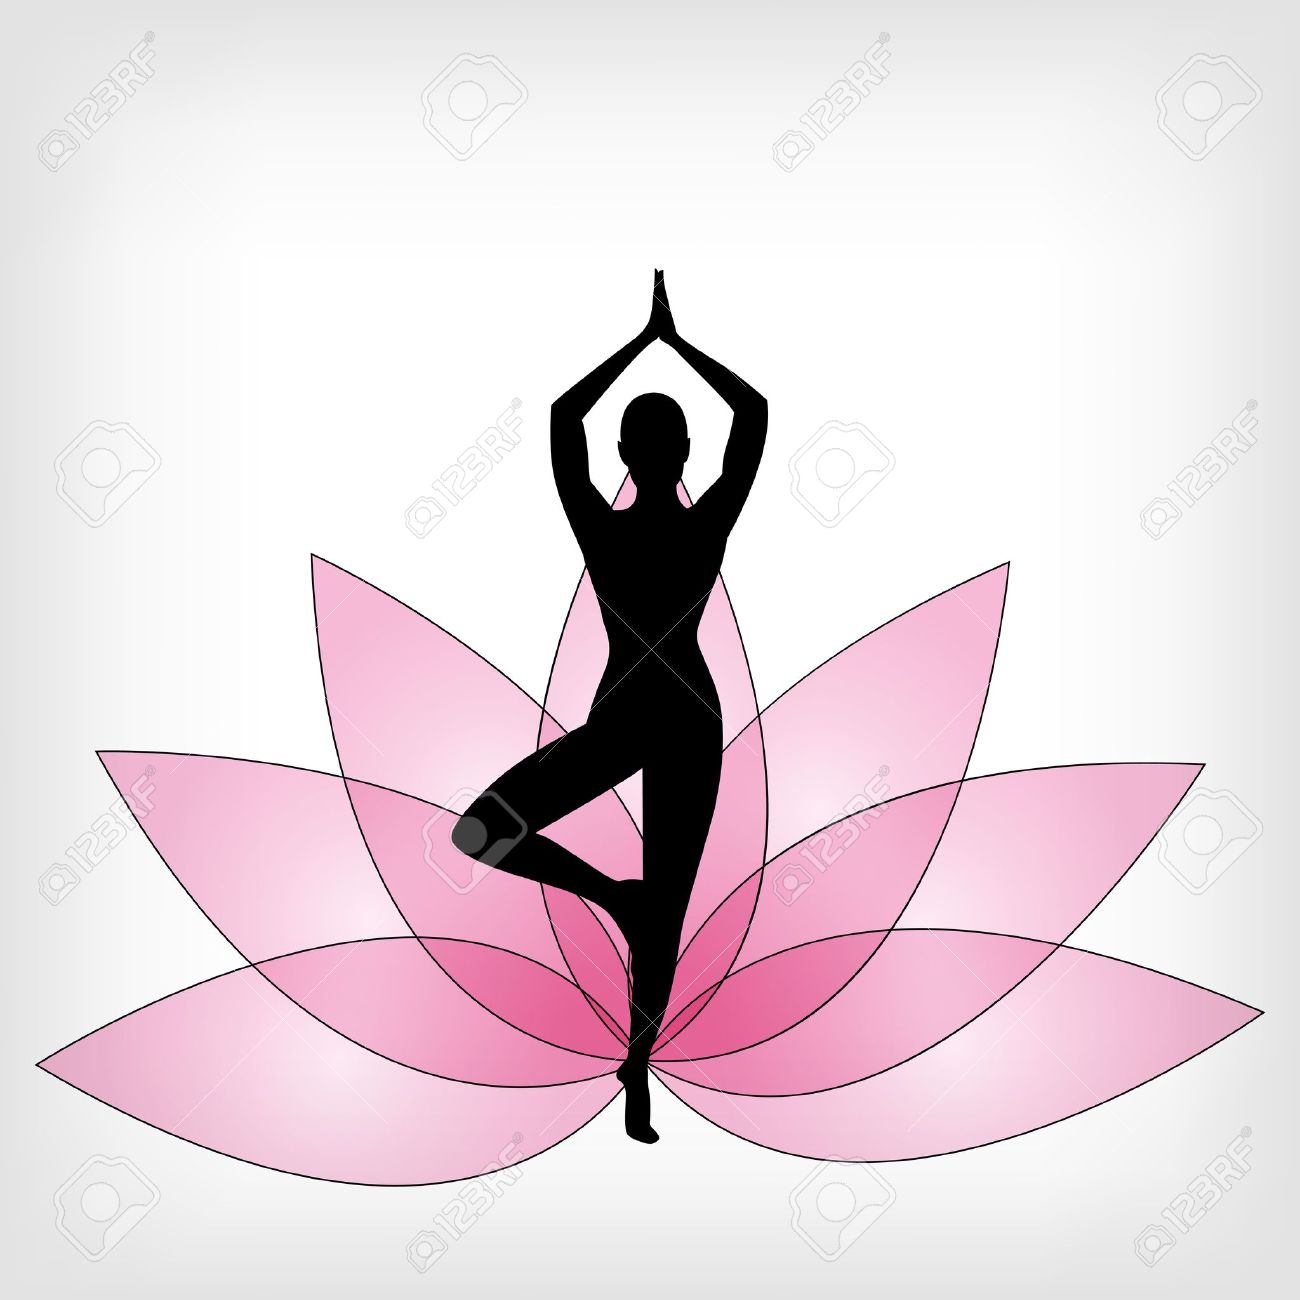 abstract yoga background - vector illustration Stock Vector - 13107400